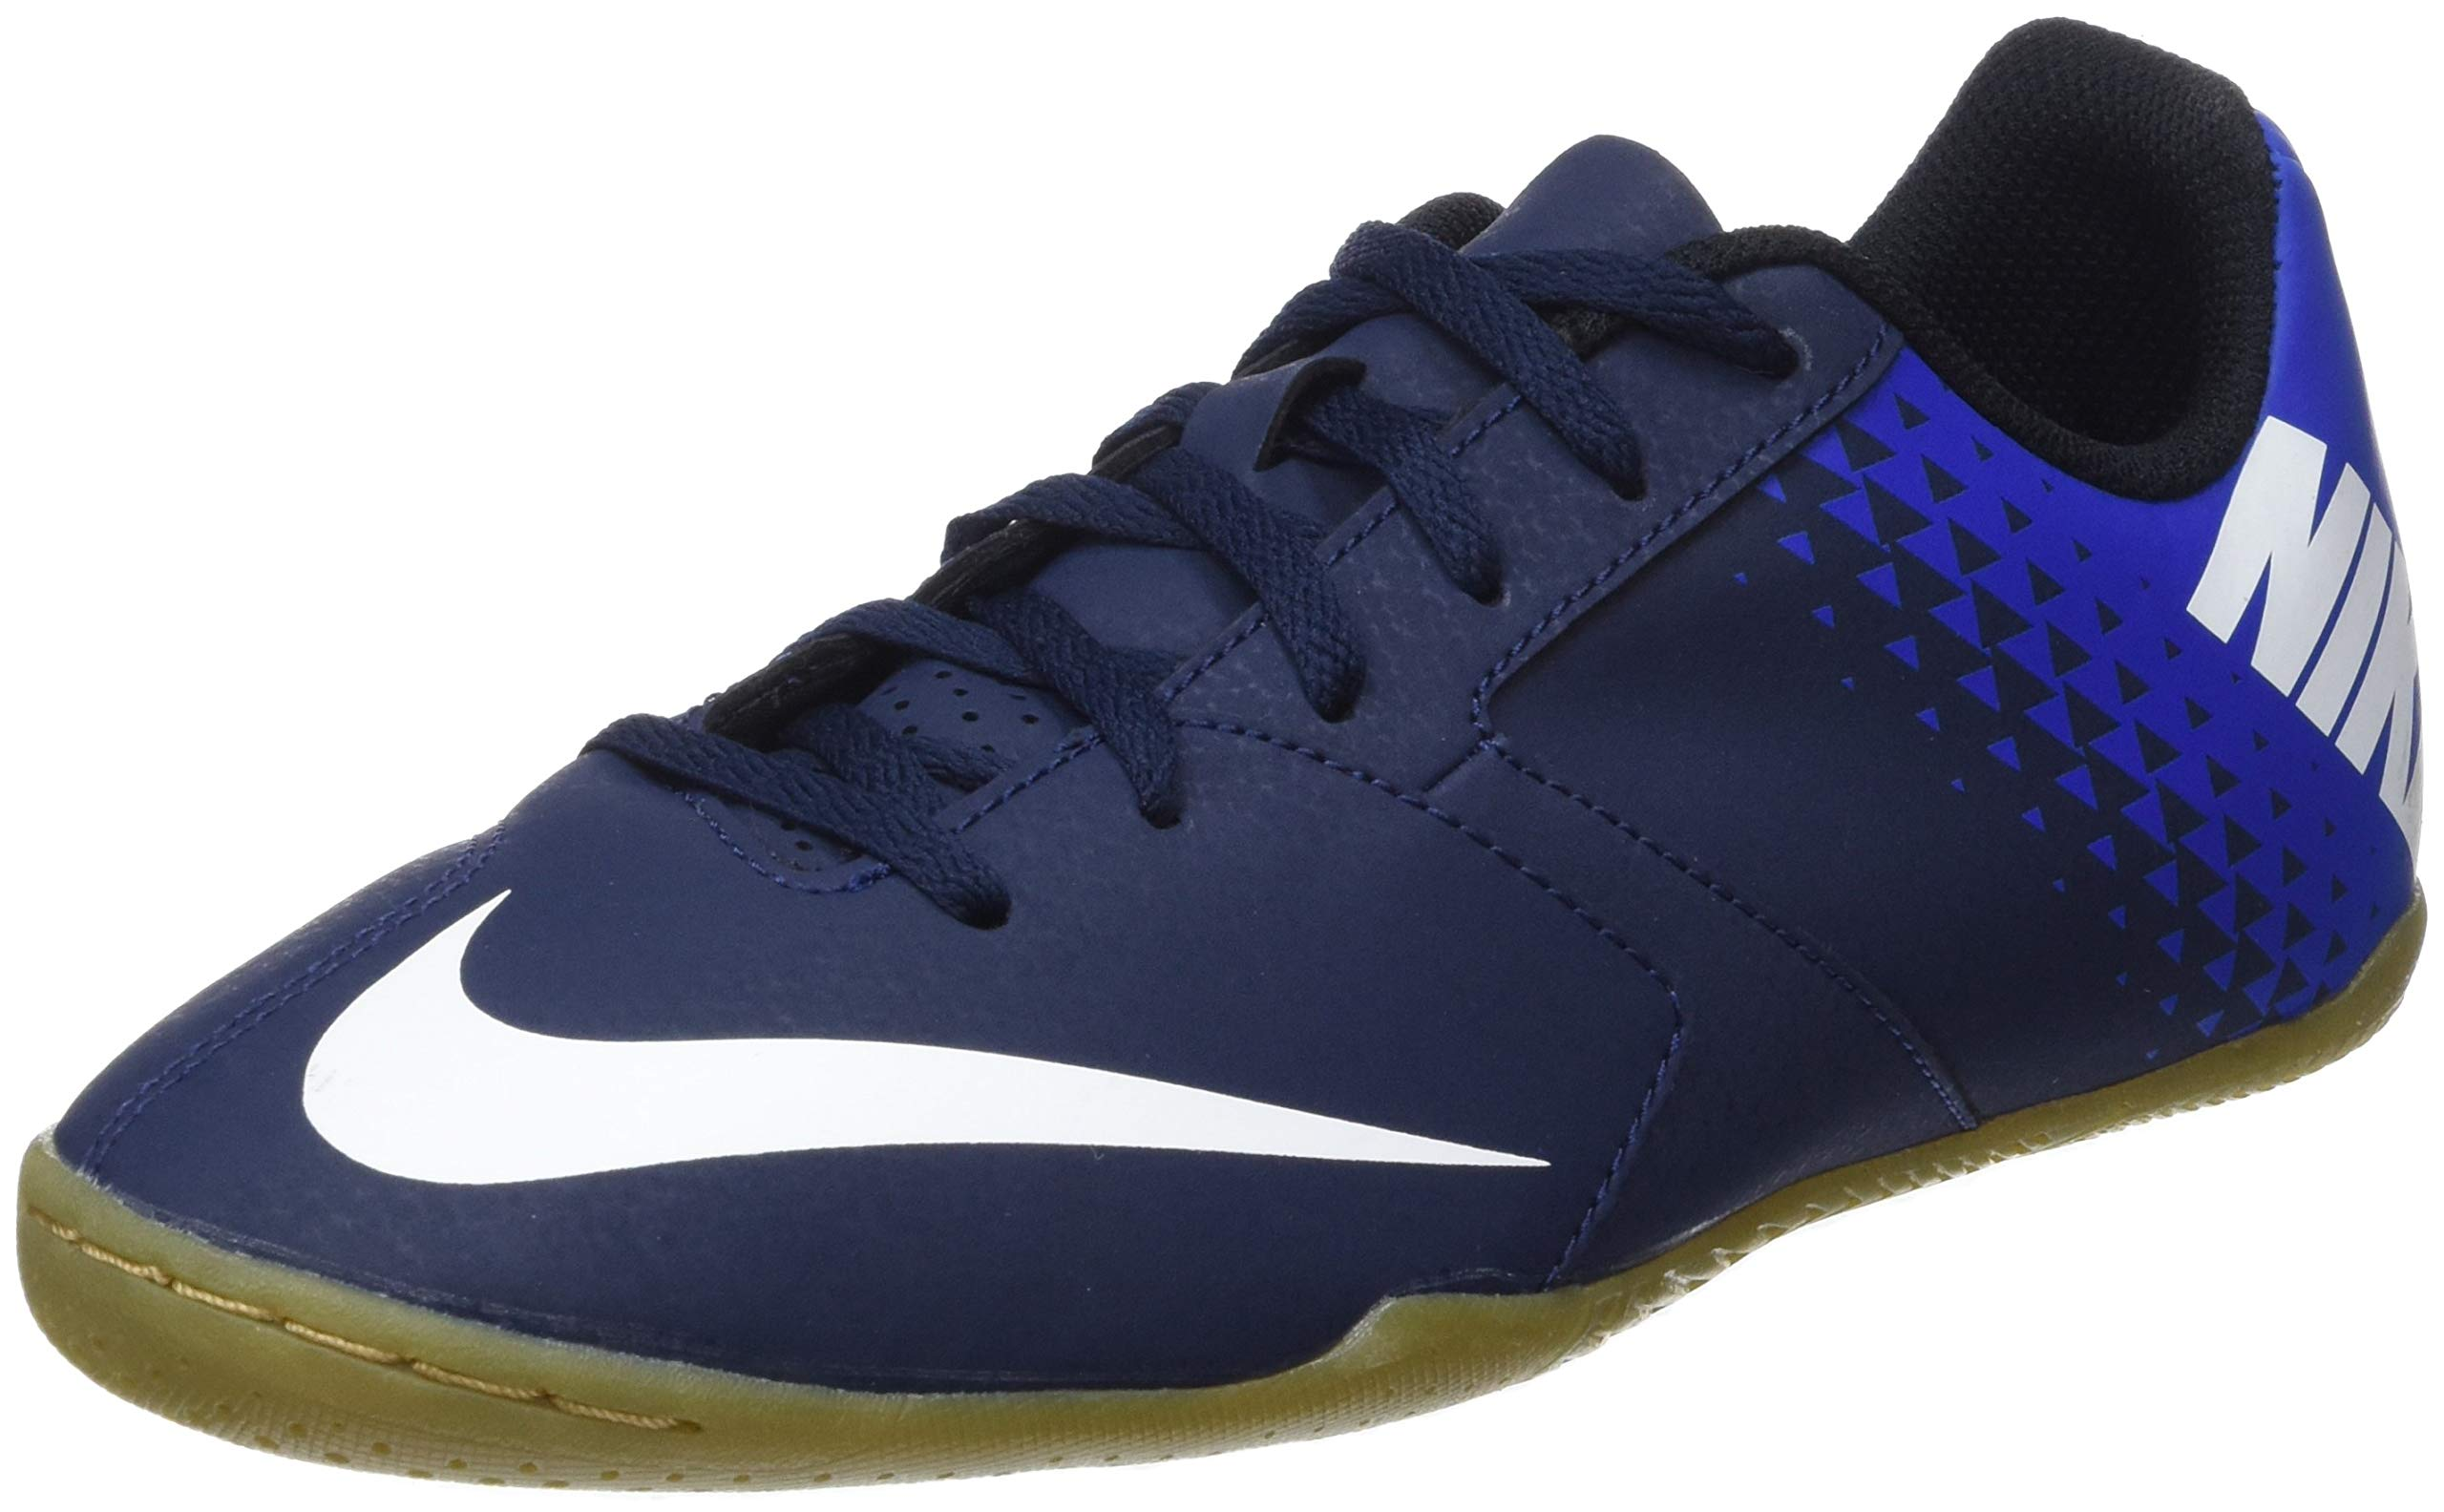 Nike Junior Bombax Indoor Soccer Shoes (Navy Blue/Blue/White) (1) by Nike